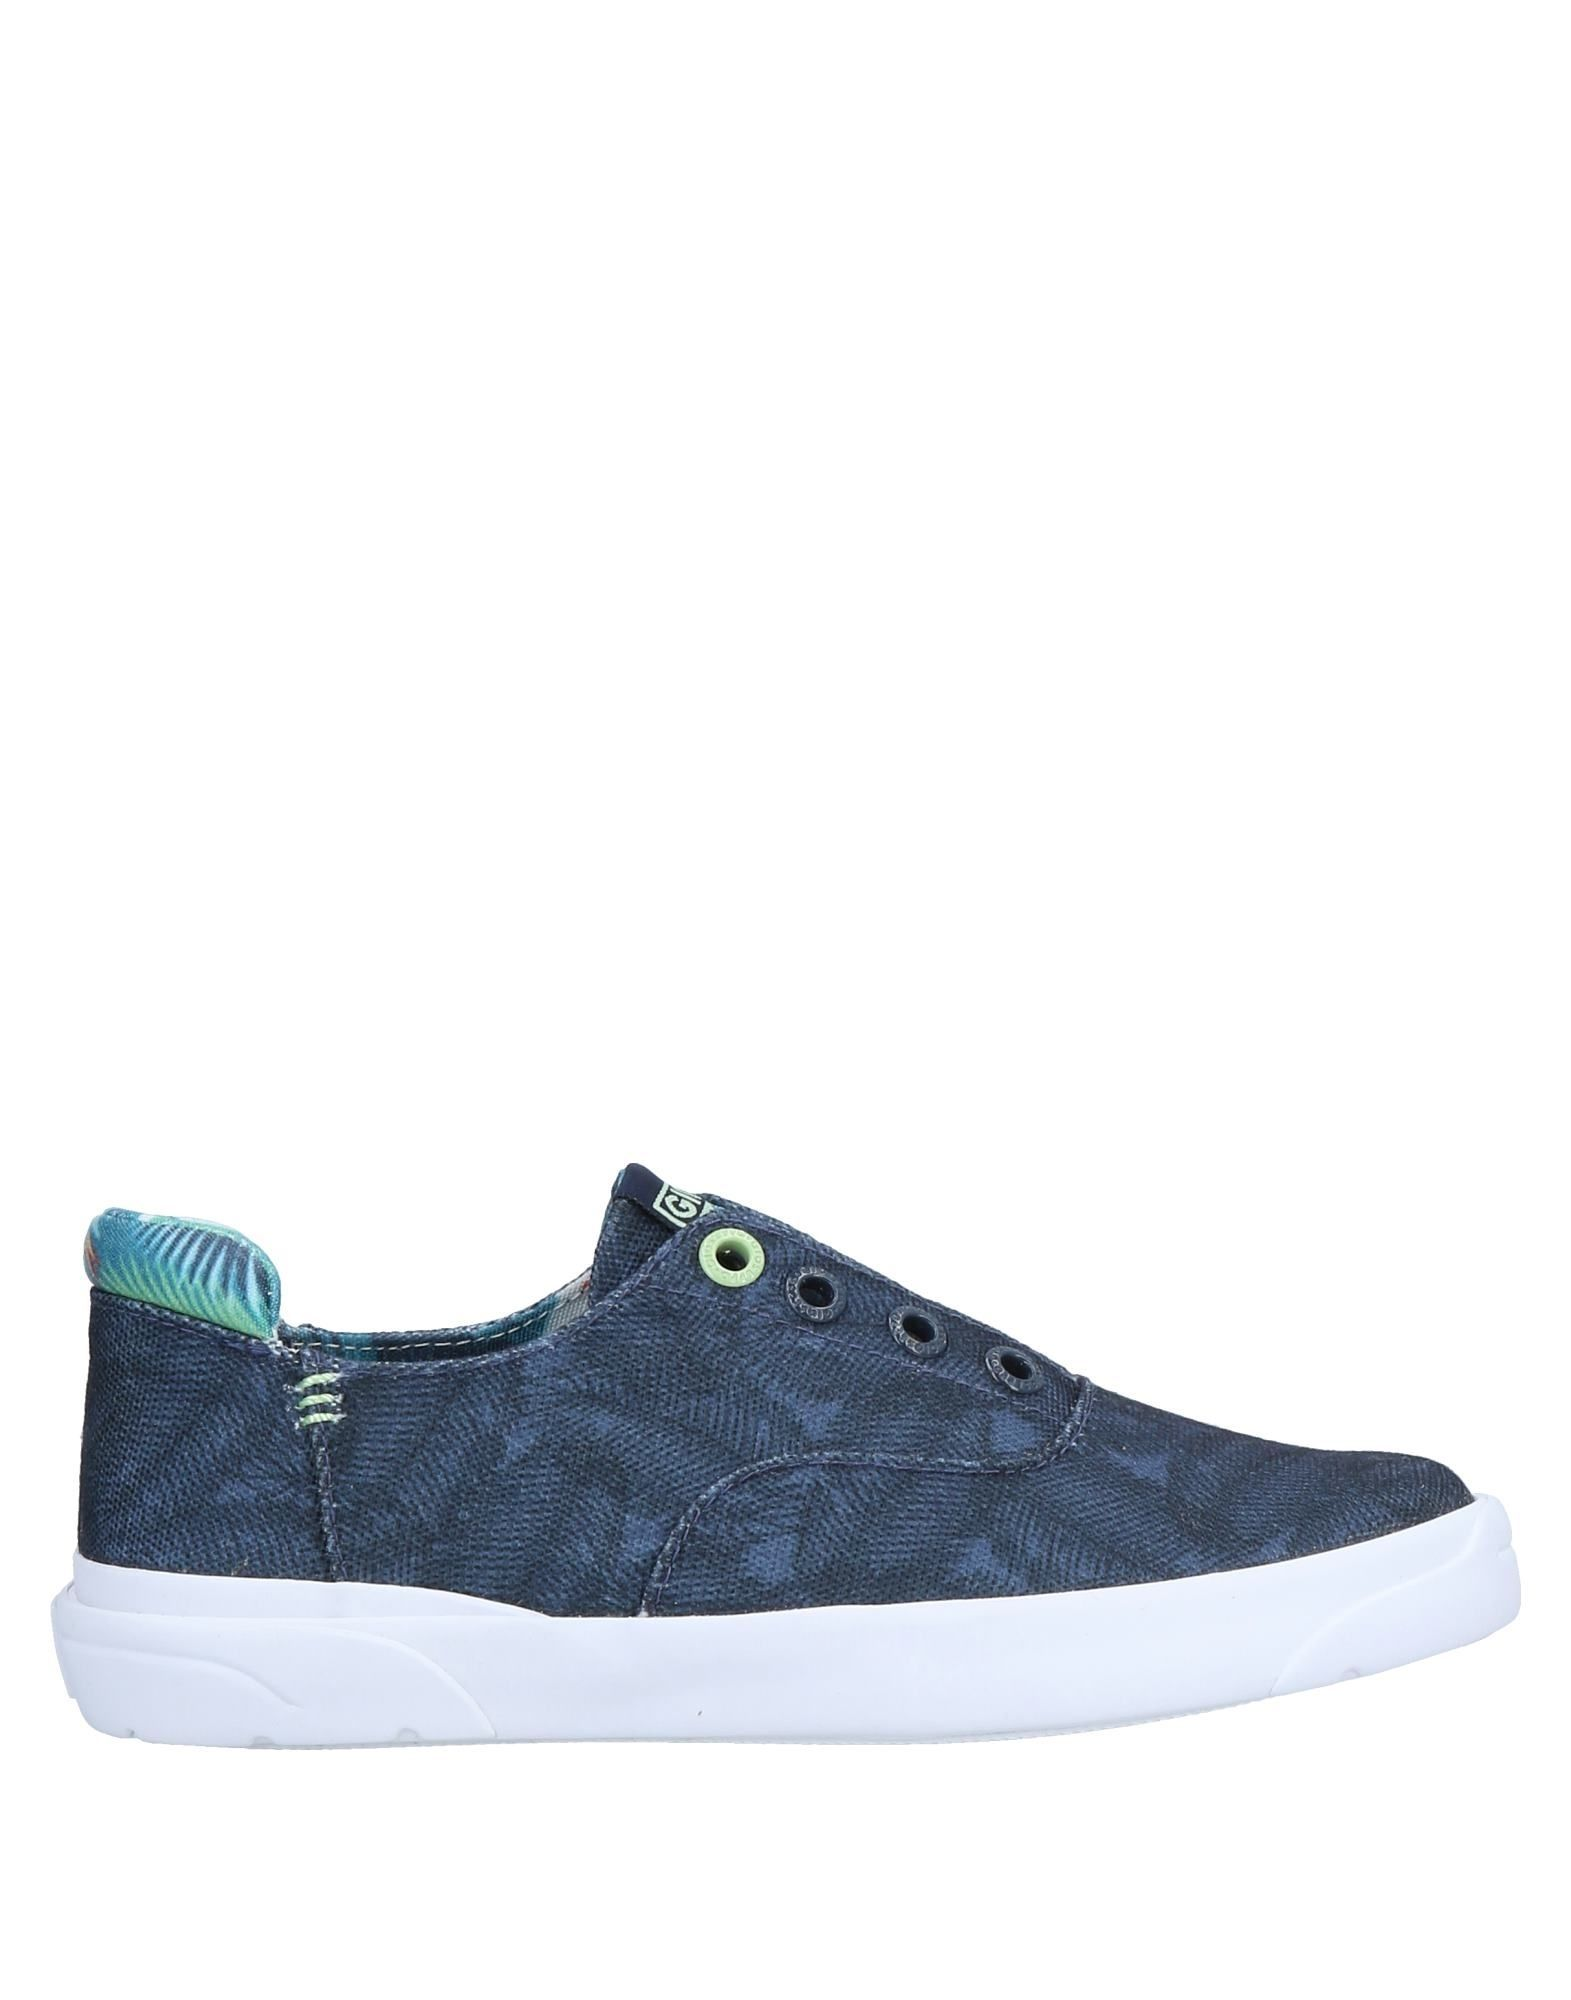 info for f70e6 3e676 GIOSEPPO Sneakers - Footwear | boys shoes in 2019 | Sneakers ...